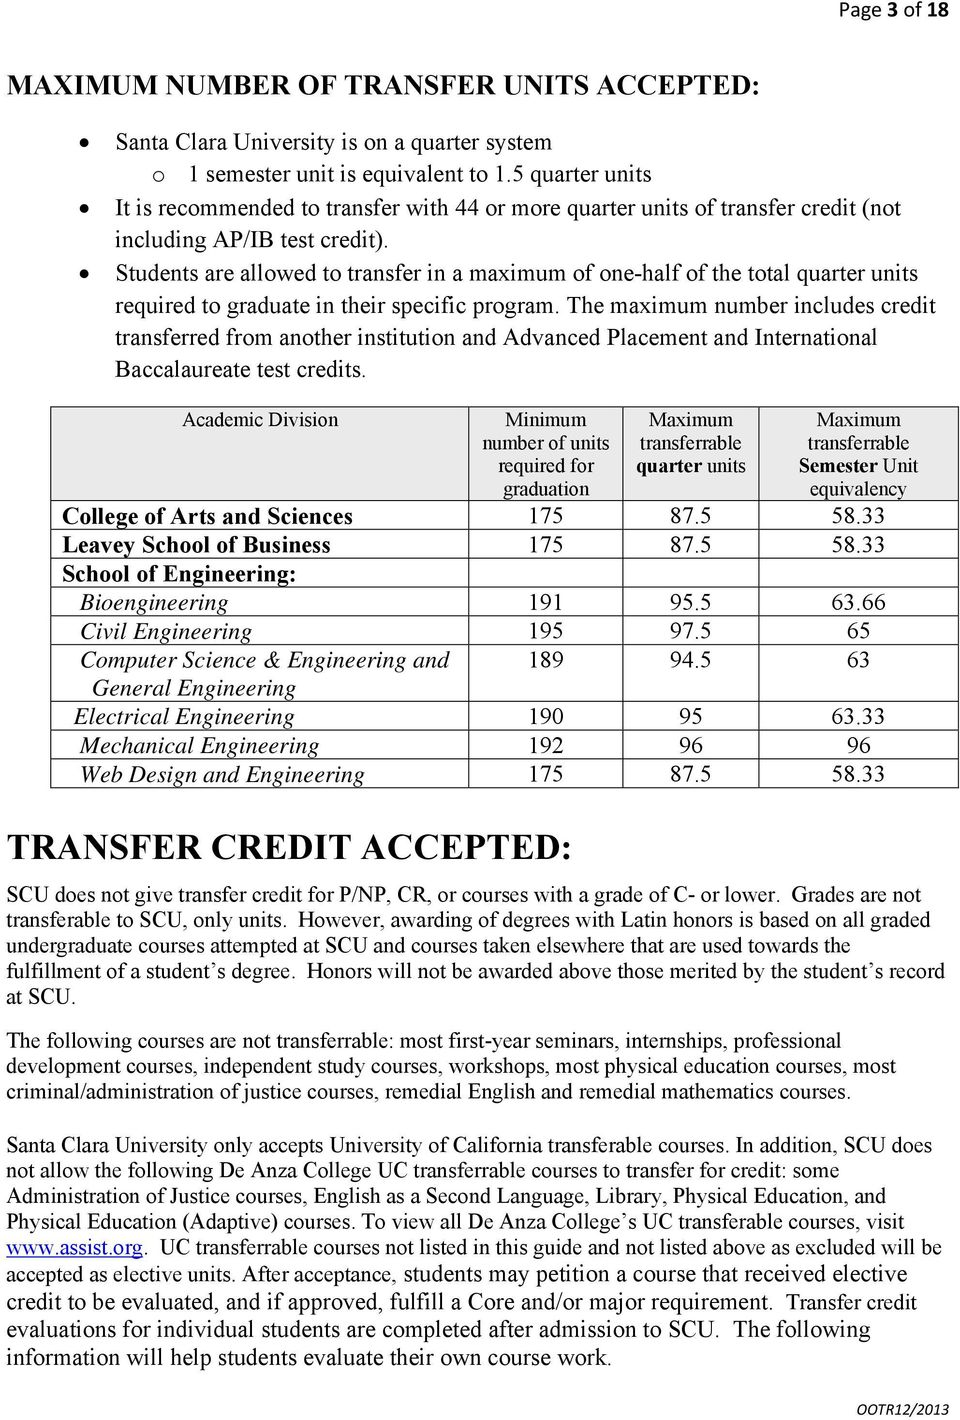 Students are allowed to transfer in a maximum of one-half of the total quarter units required to graduate in their specific program.